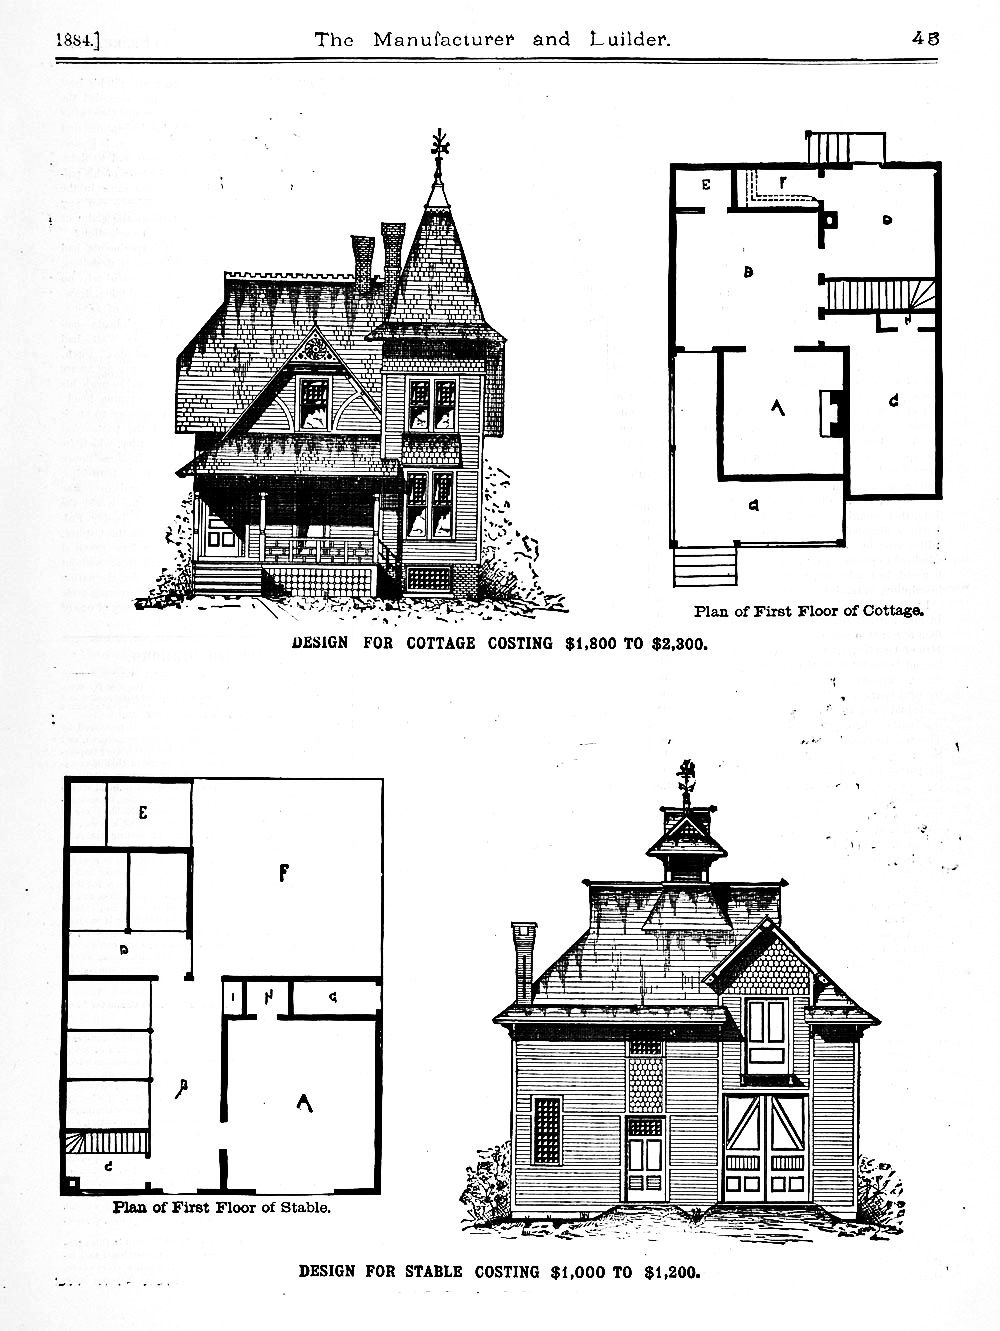 Vintage Cottage Barn Floor Plans With Stable Carriage House Carriage House Plans Carriage House House Plans